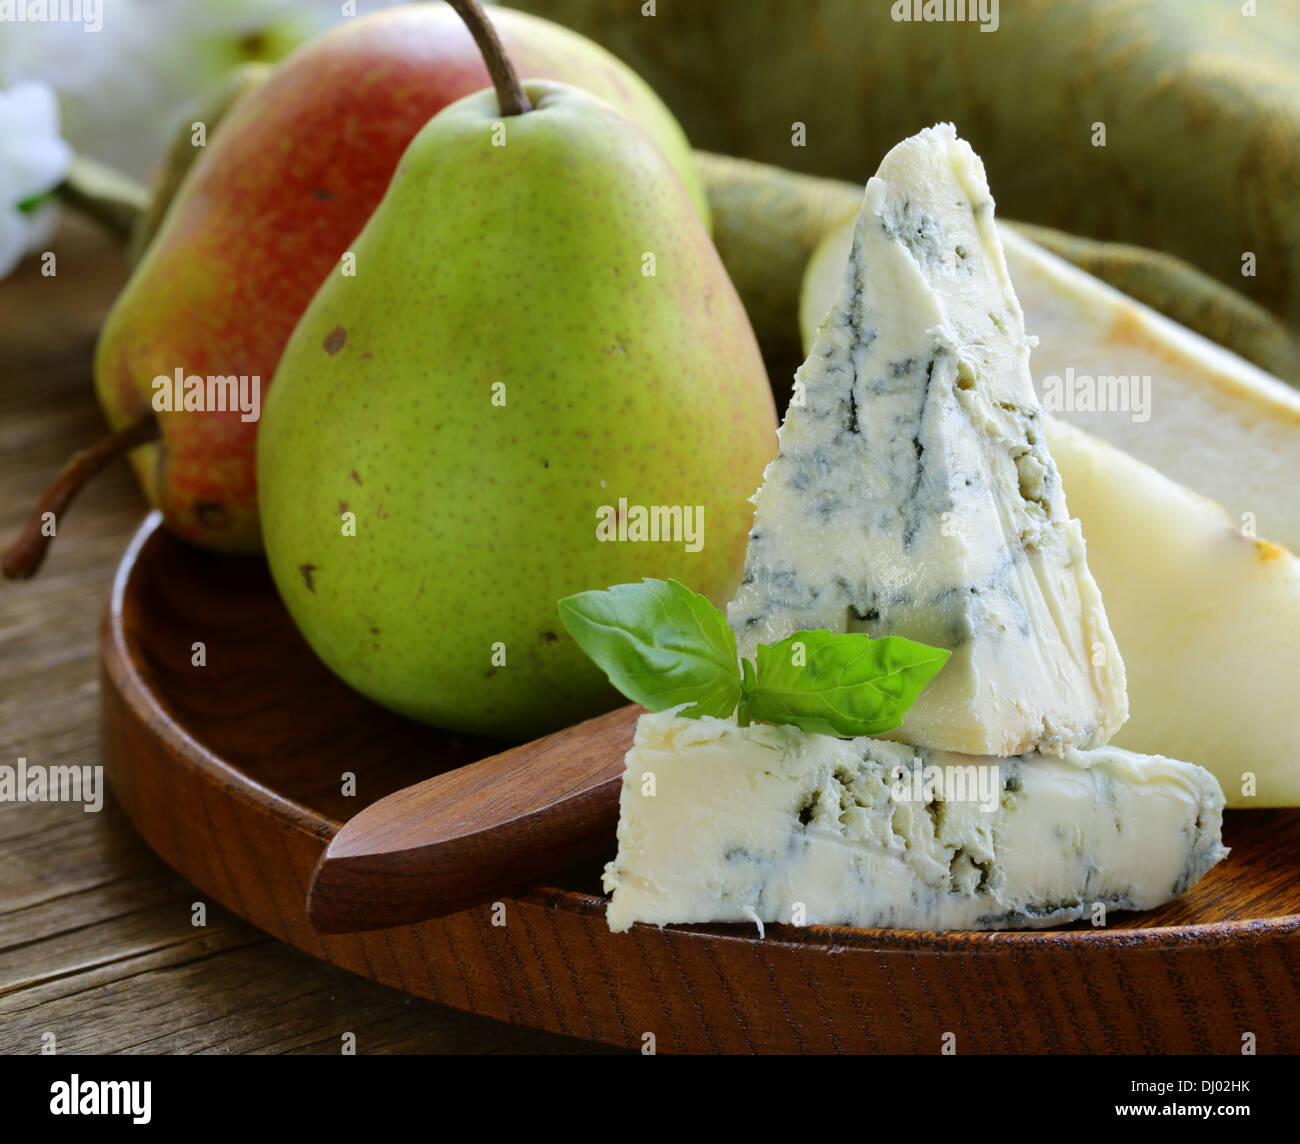 Blue cheese and pears on a wooden plate - Stock Image